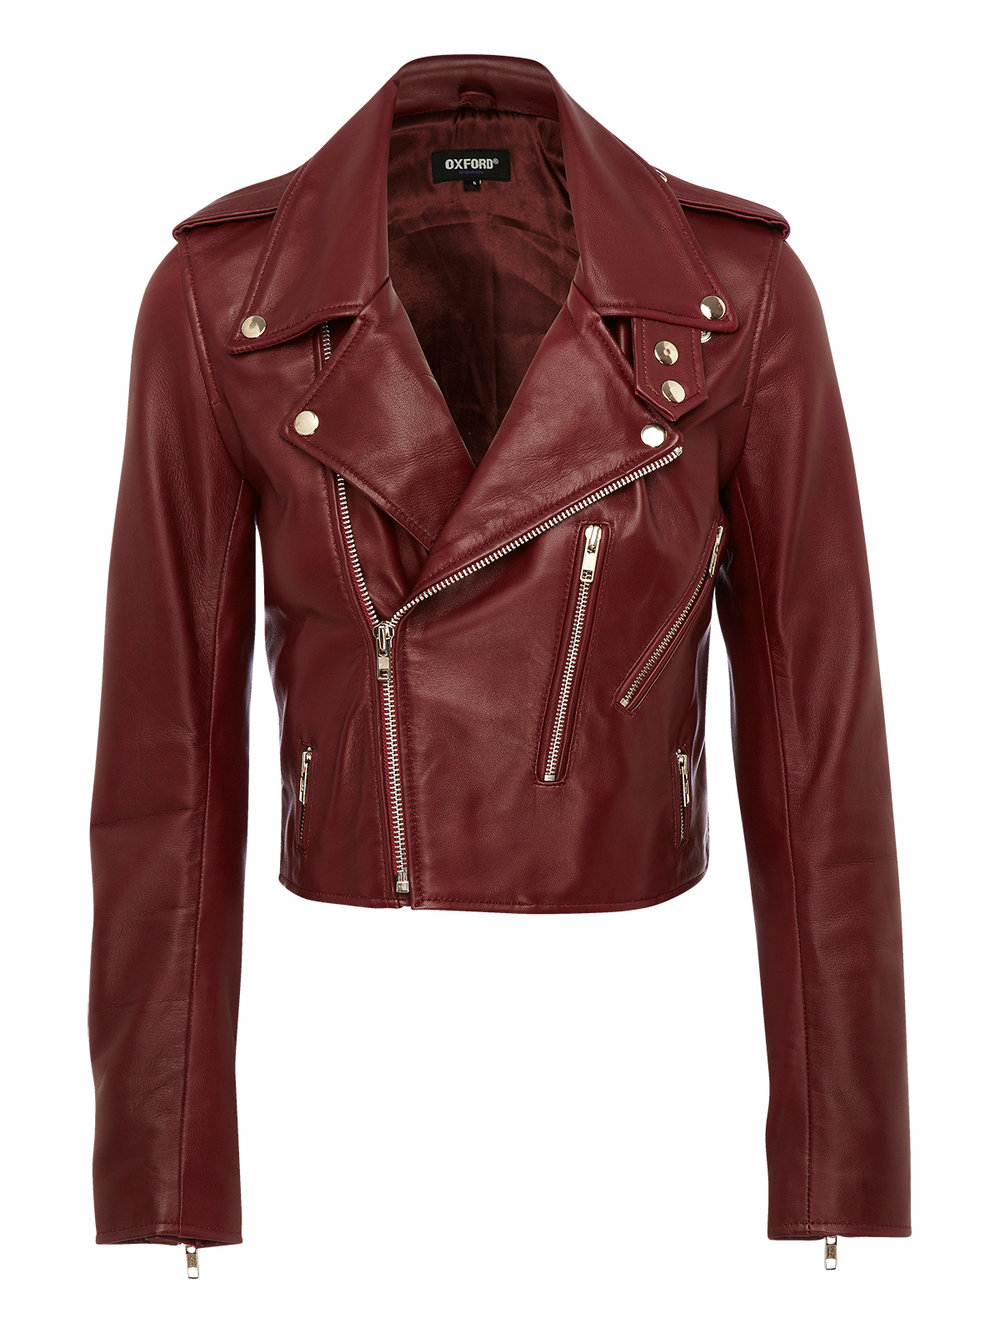 OXFORD Lizzy Crop Leather Jacket $599.00